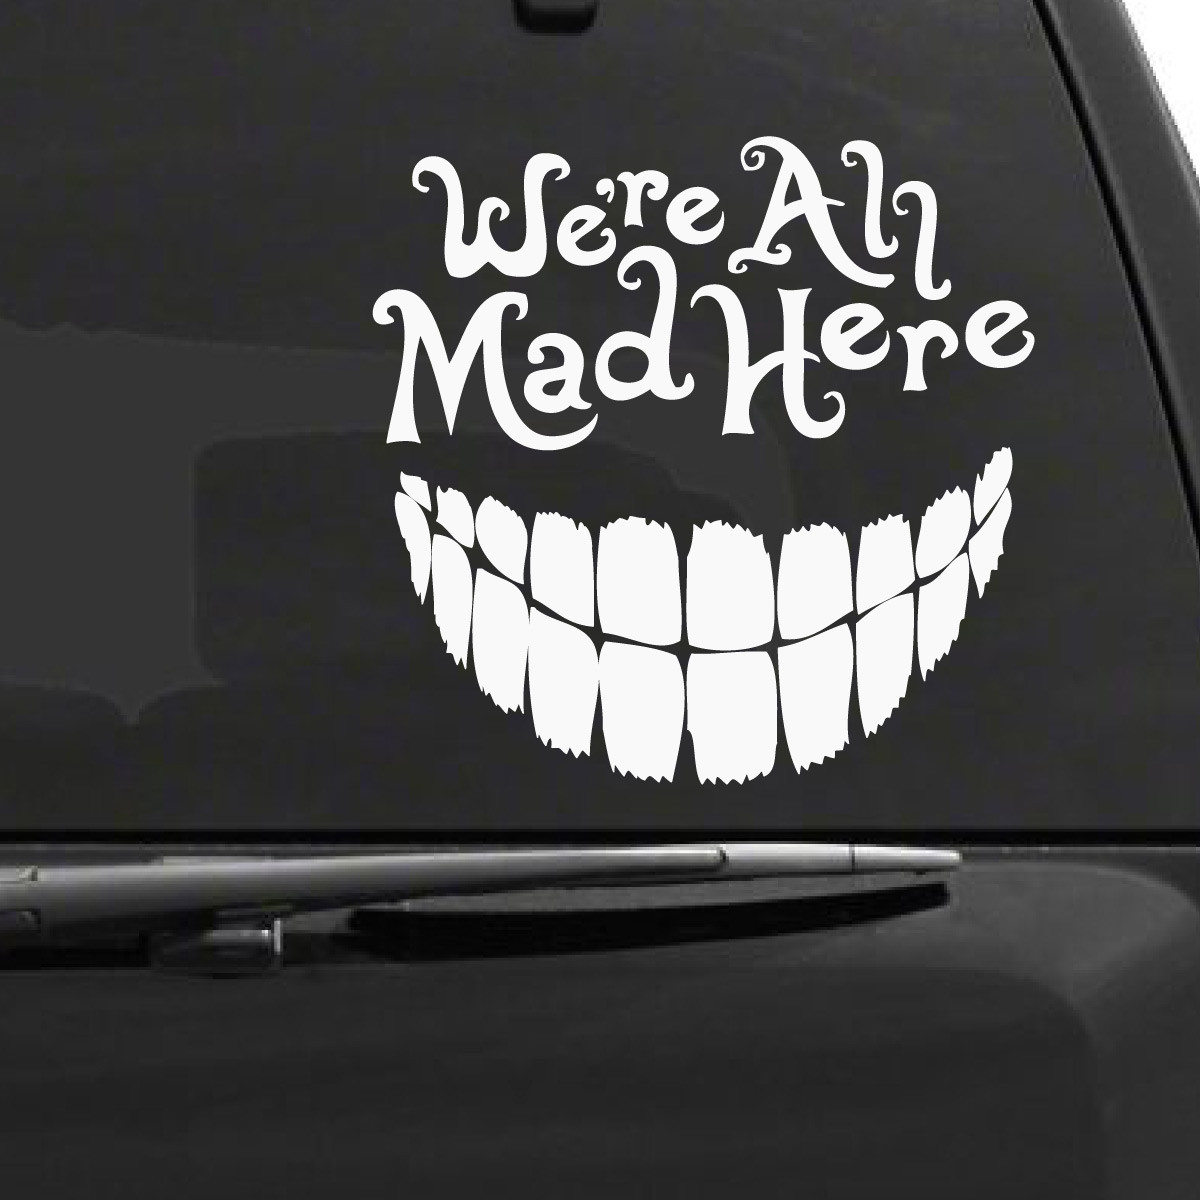 Mario Wall Sticker Alice In Wonderland Cheshire Cat Car Decal The Decal Guru